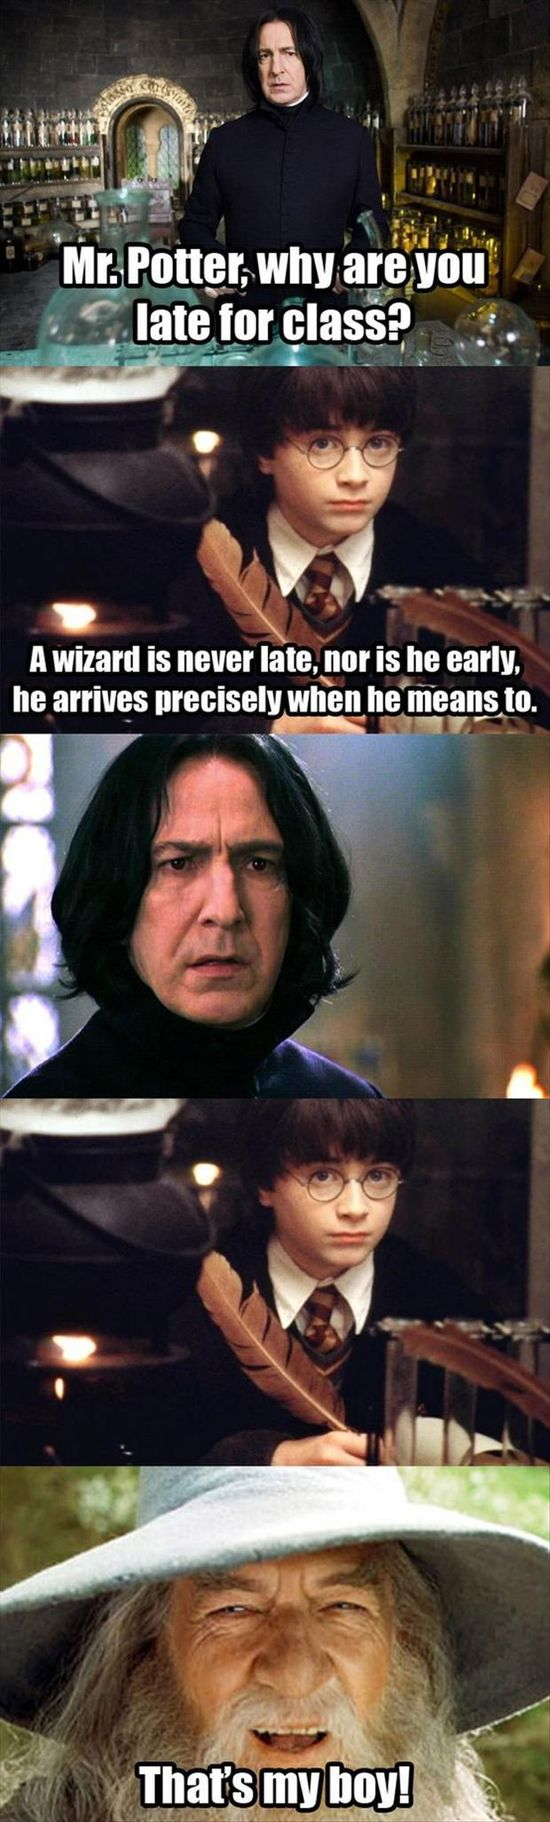 a wizard is never late, nor is he early, funny harry potter quotes